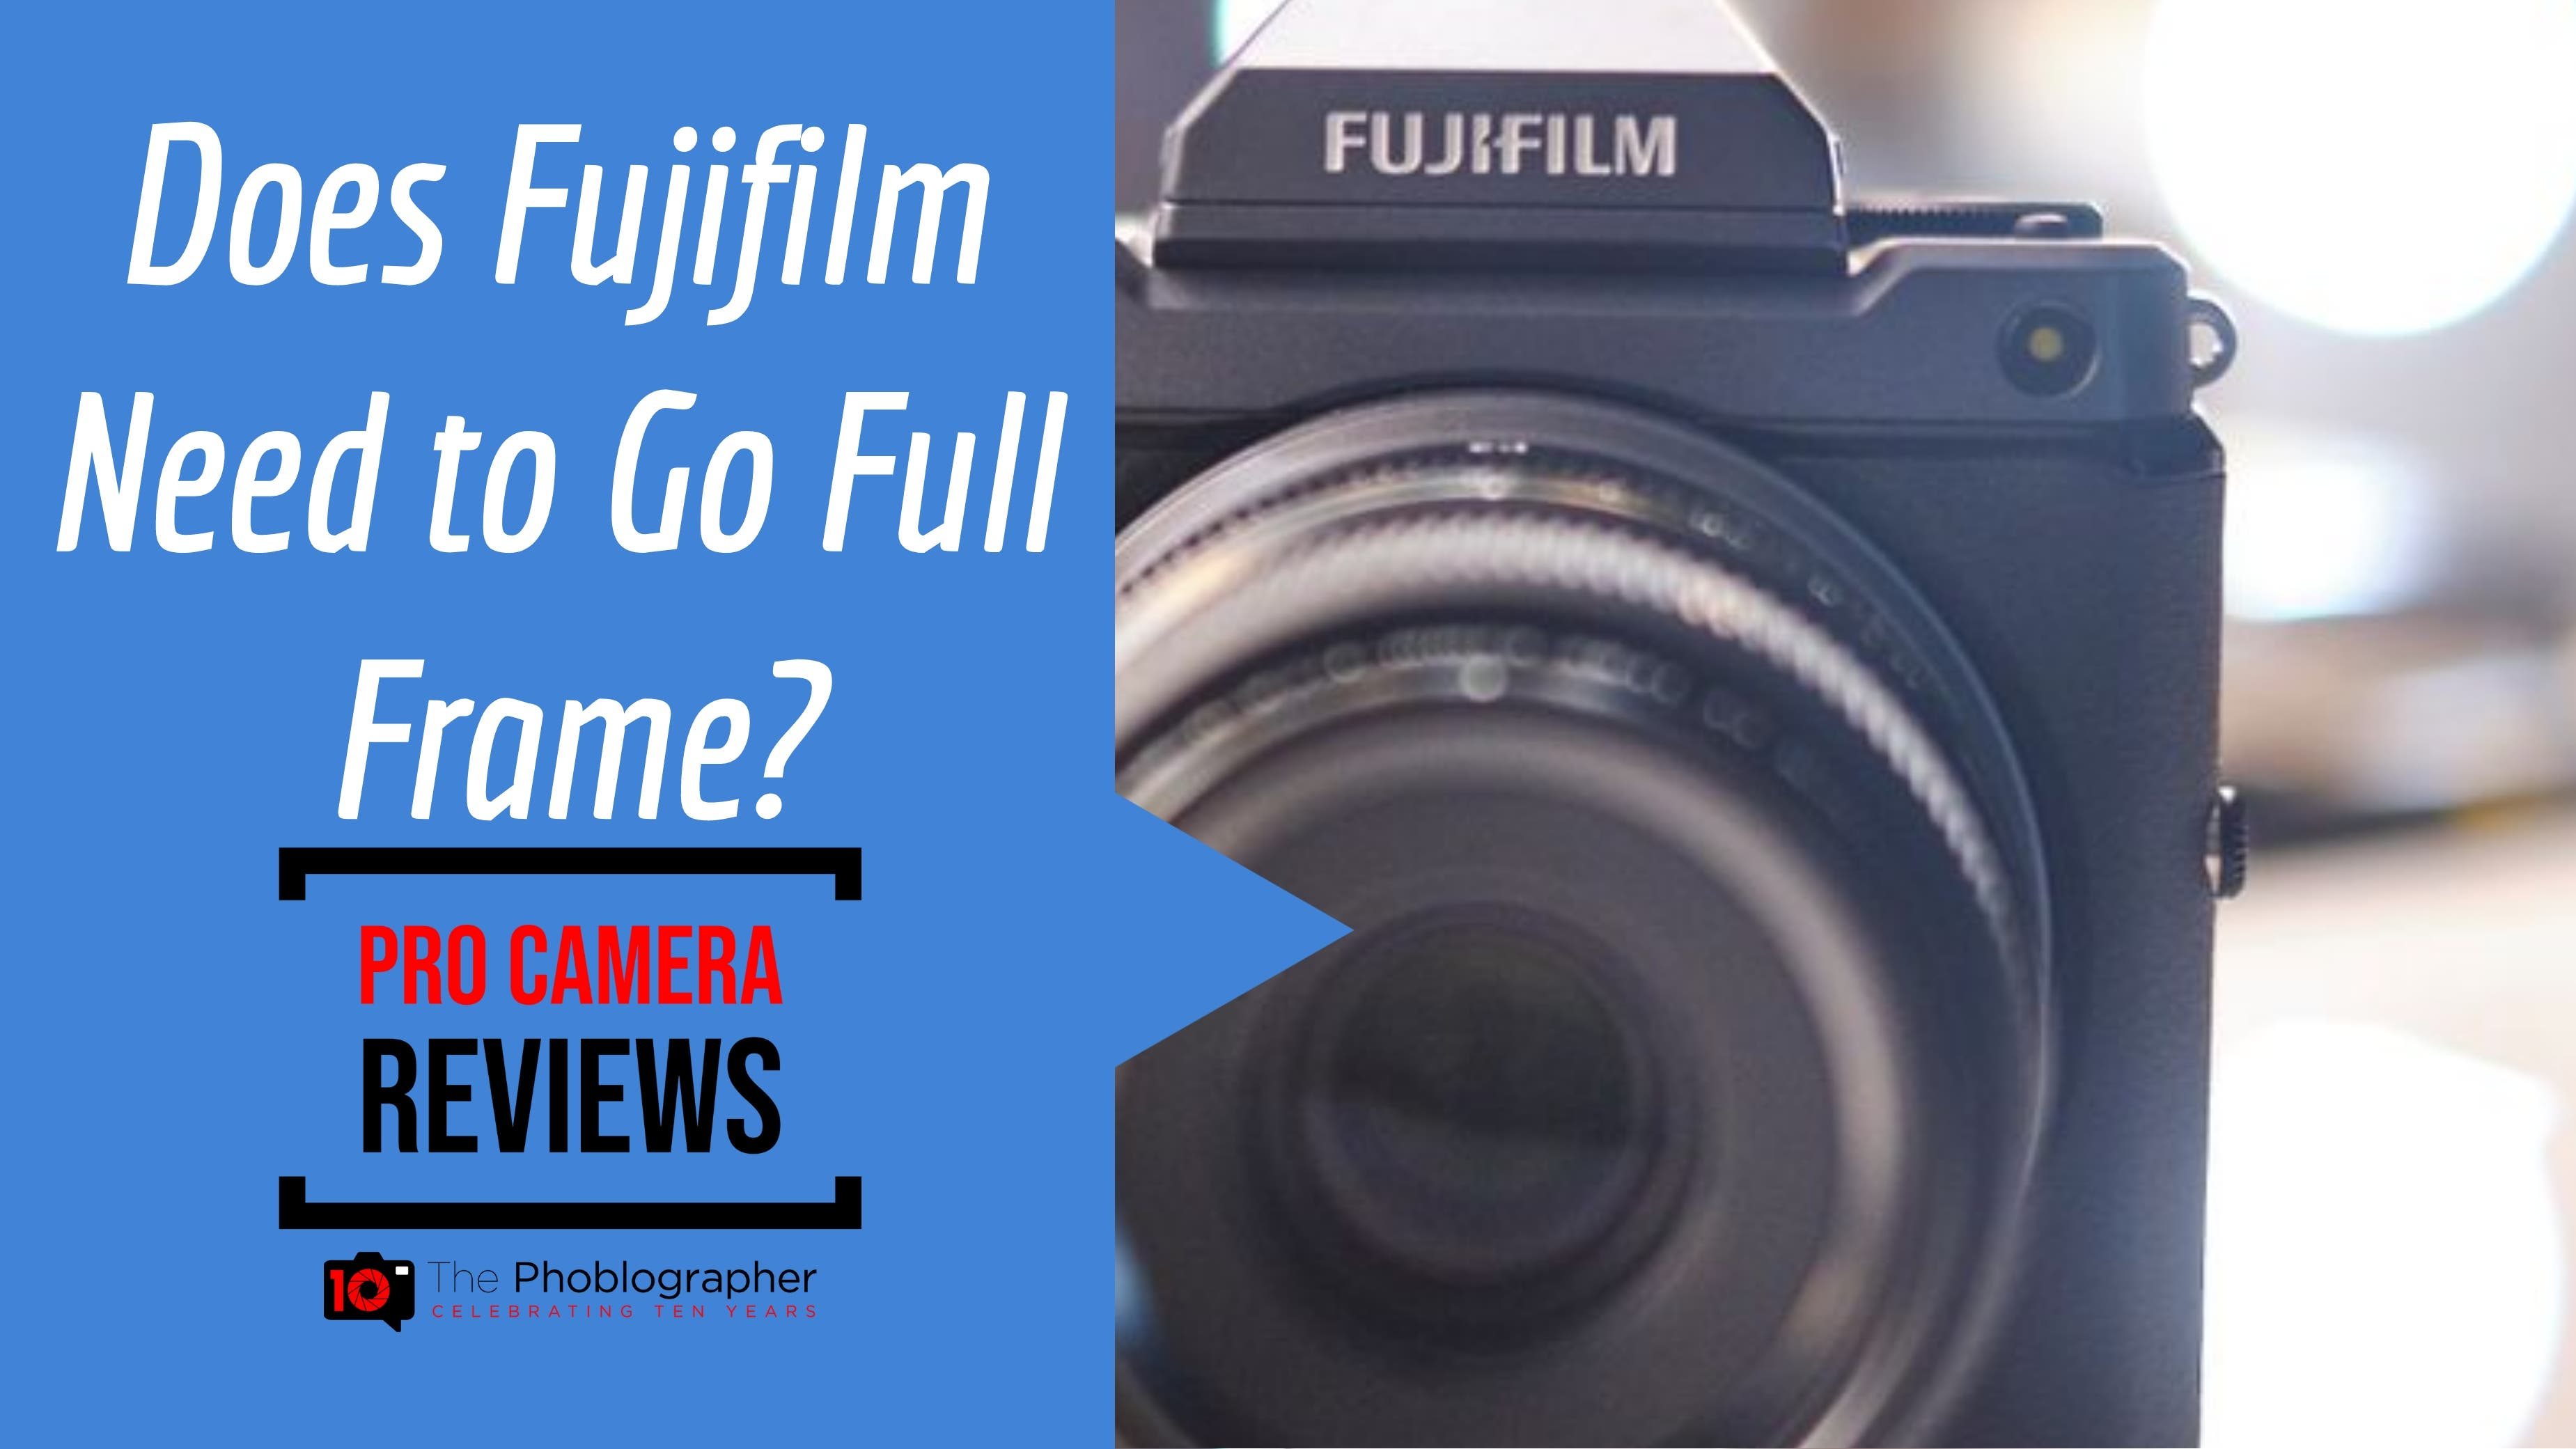 With No Fujifilm Full Frame Camera, Will They End Up Like Pentax?